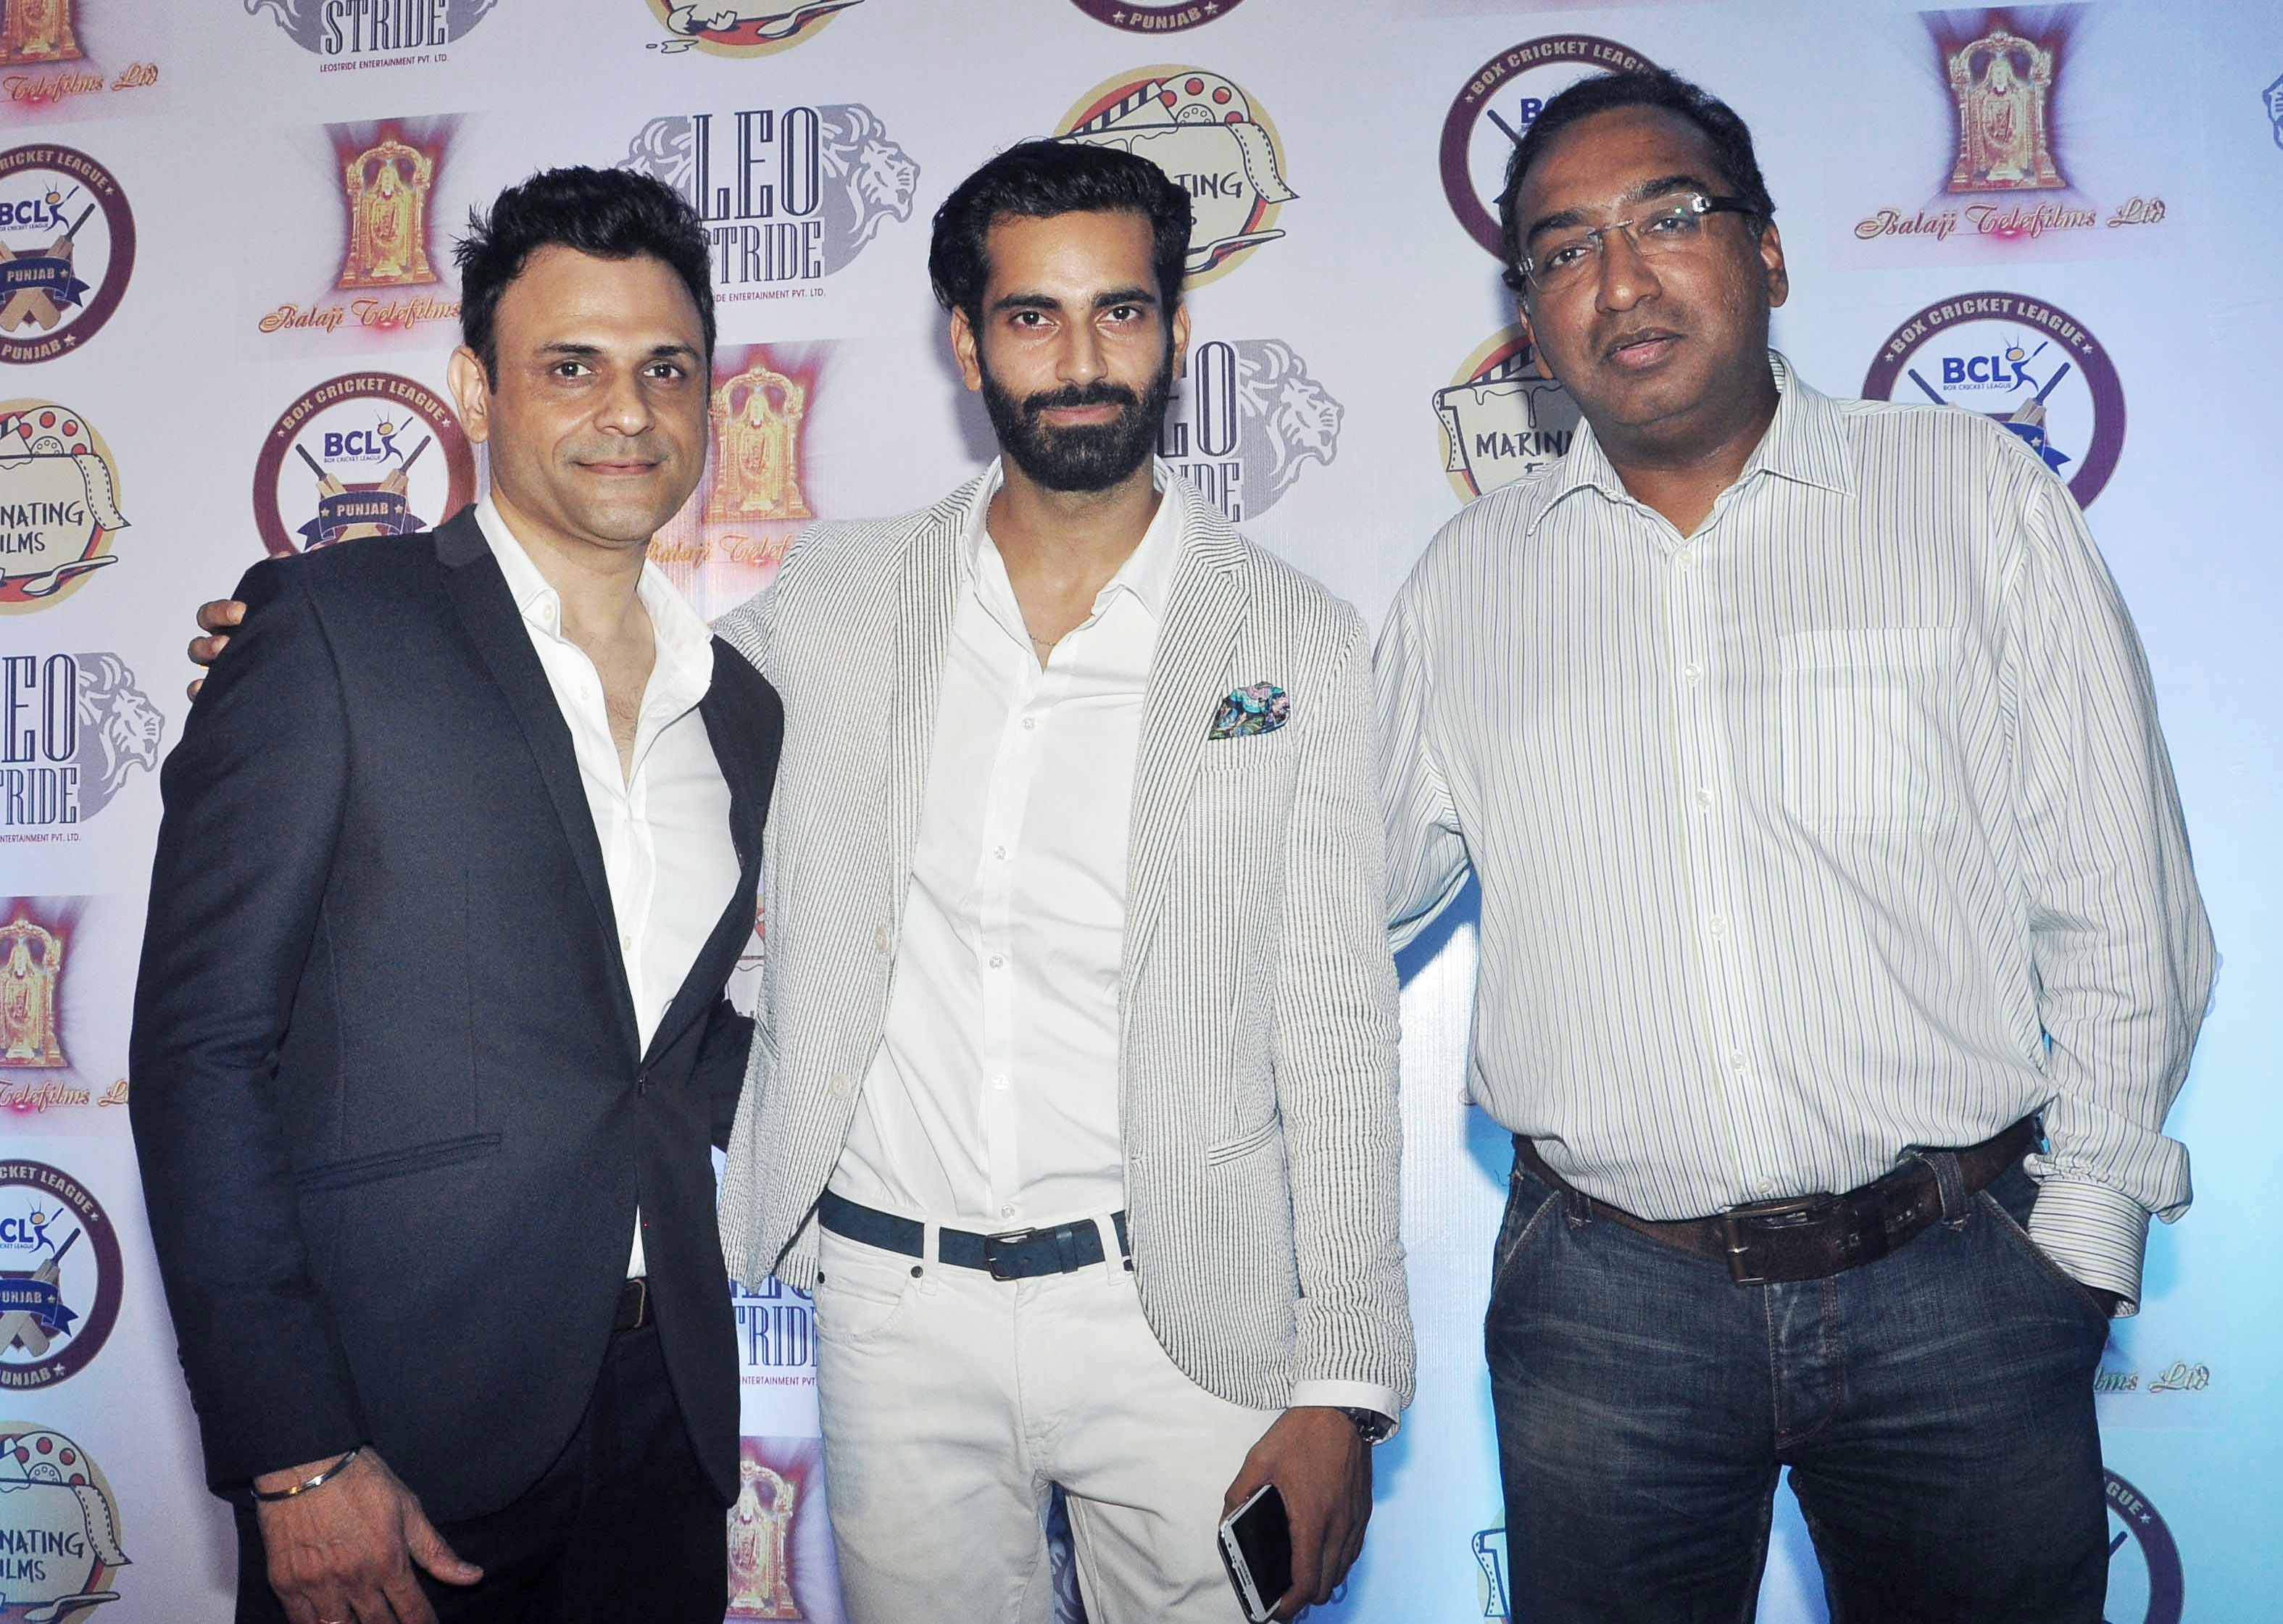 Sumit Dutt (Owner BCL-Punjab), Sunny Arora (Founder - BCL), Sameer Nair (Group CEO - Balaji Telefilms)